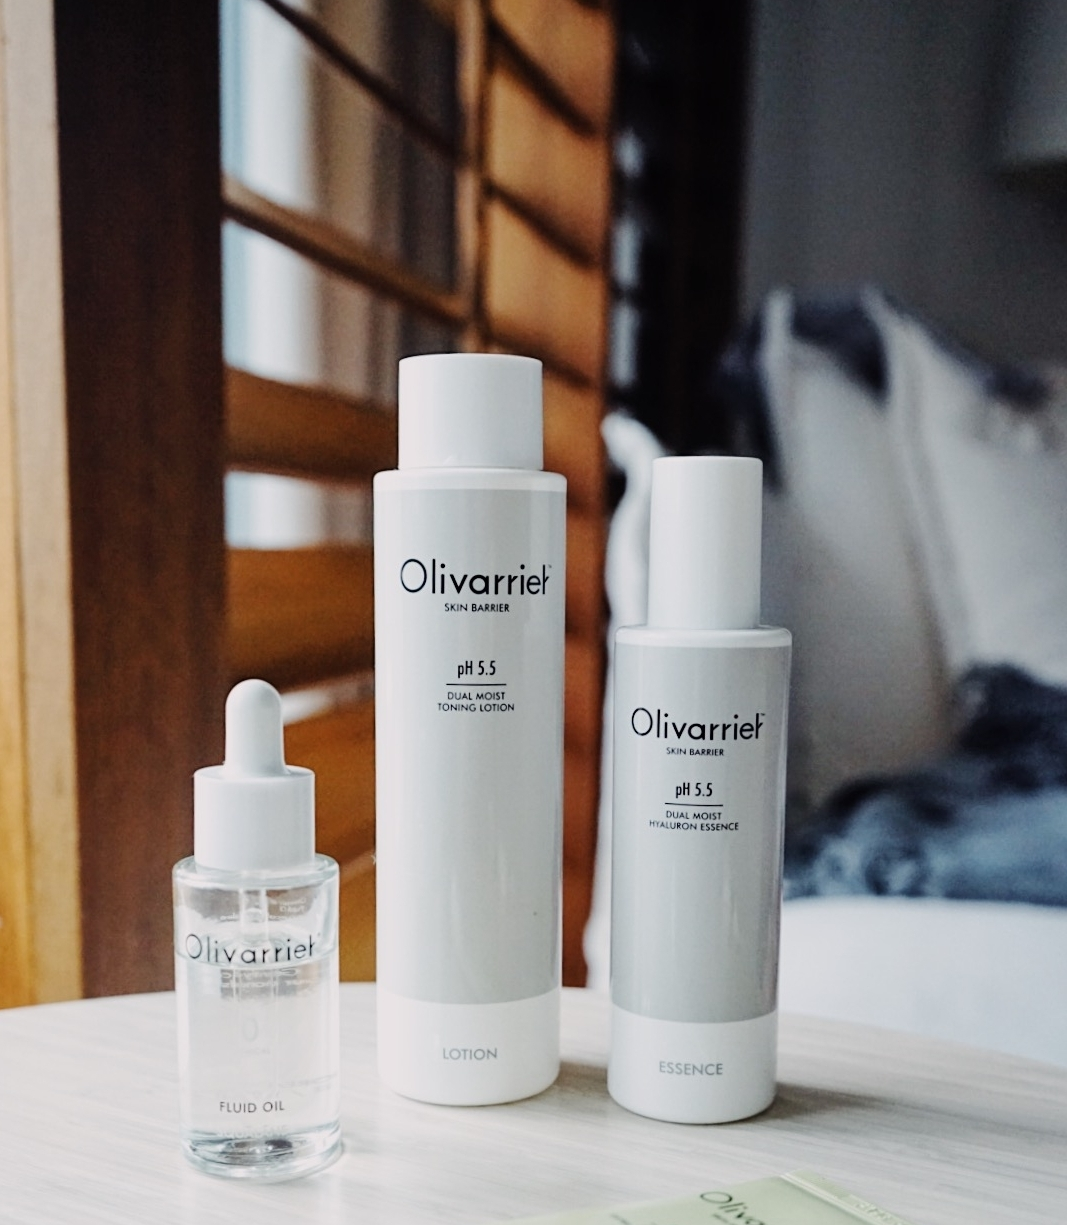 olivarrier review - I found out about this brand at the Peach & Lily Sample Sale last year in New York. I was excited about this brand because of its pH 5.5 and the minimal packaging. I bought the cream and essence at the Sample Sale and ended up winning this entire set from a P&L giveaway!